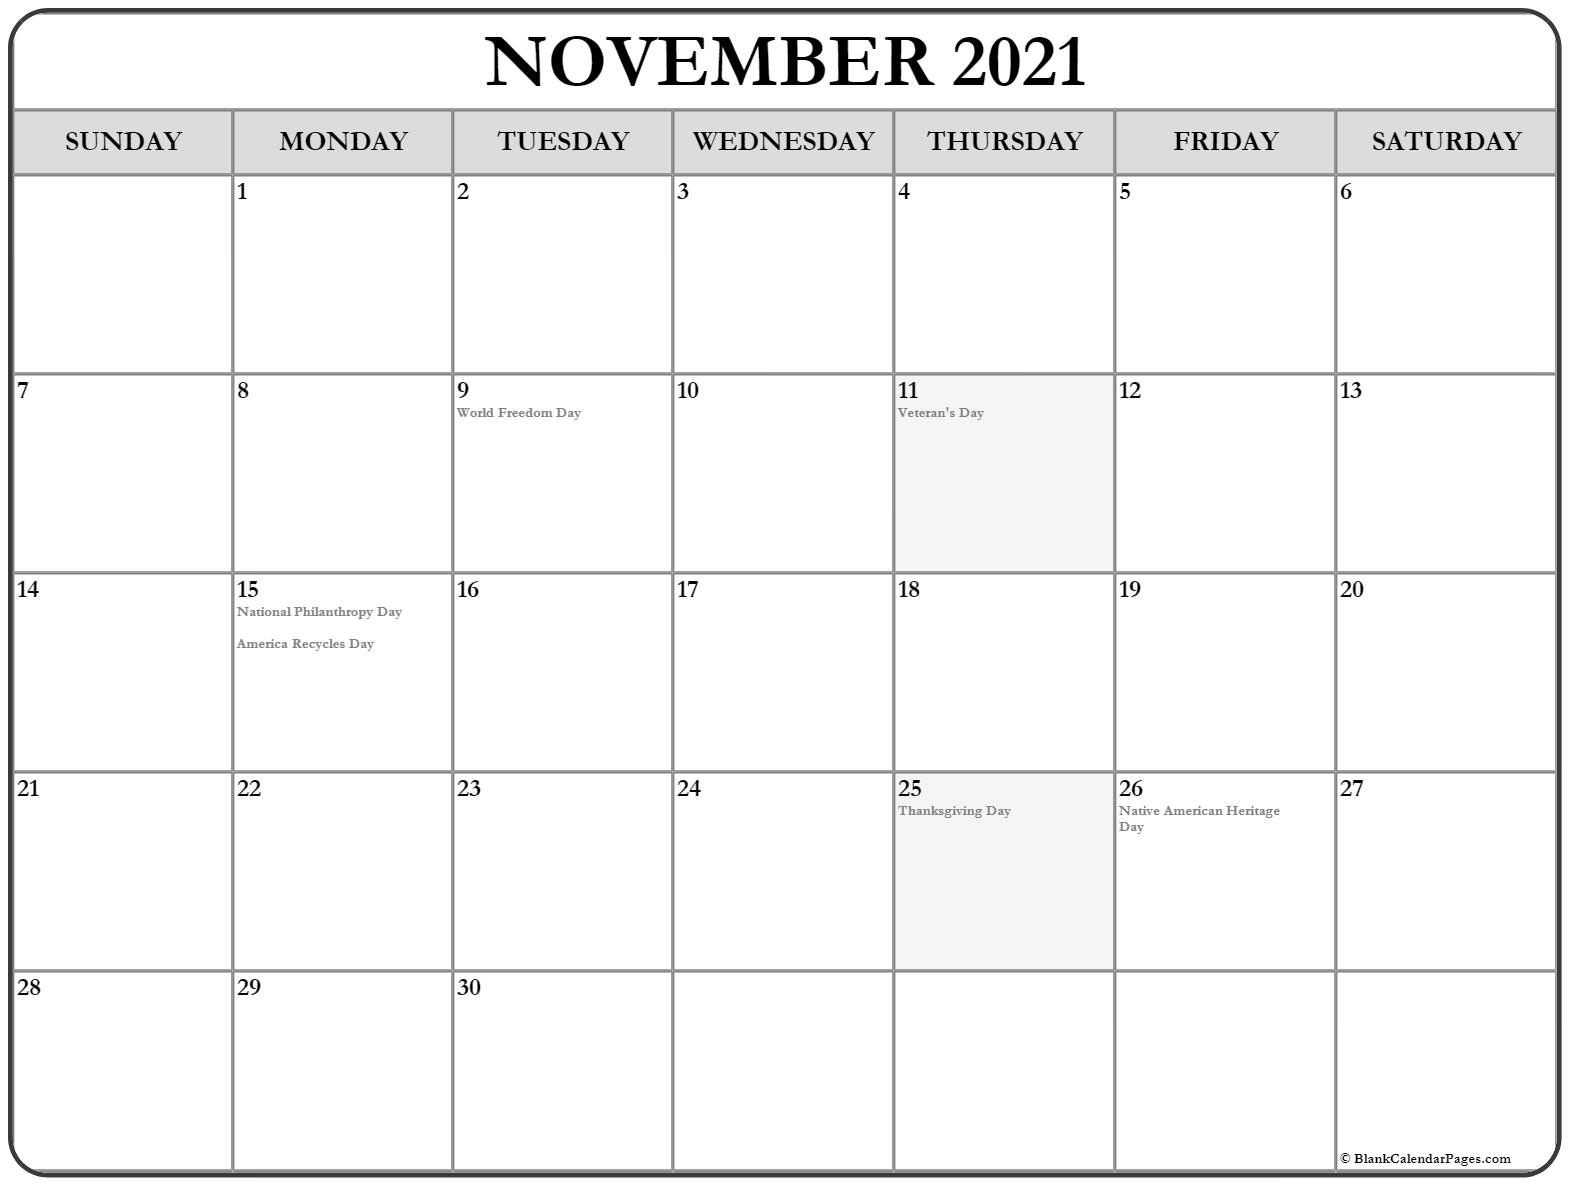 November 2021 USA holiday calendar. Incluides US federal holidays and observations